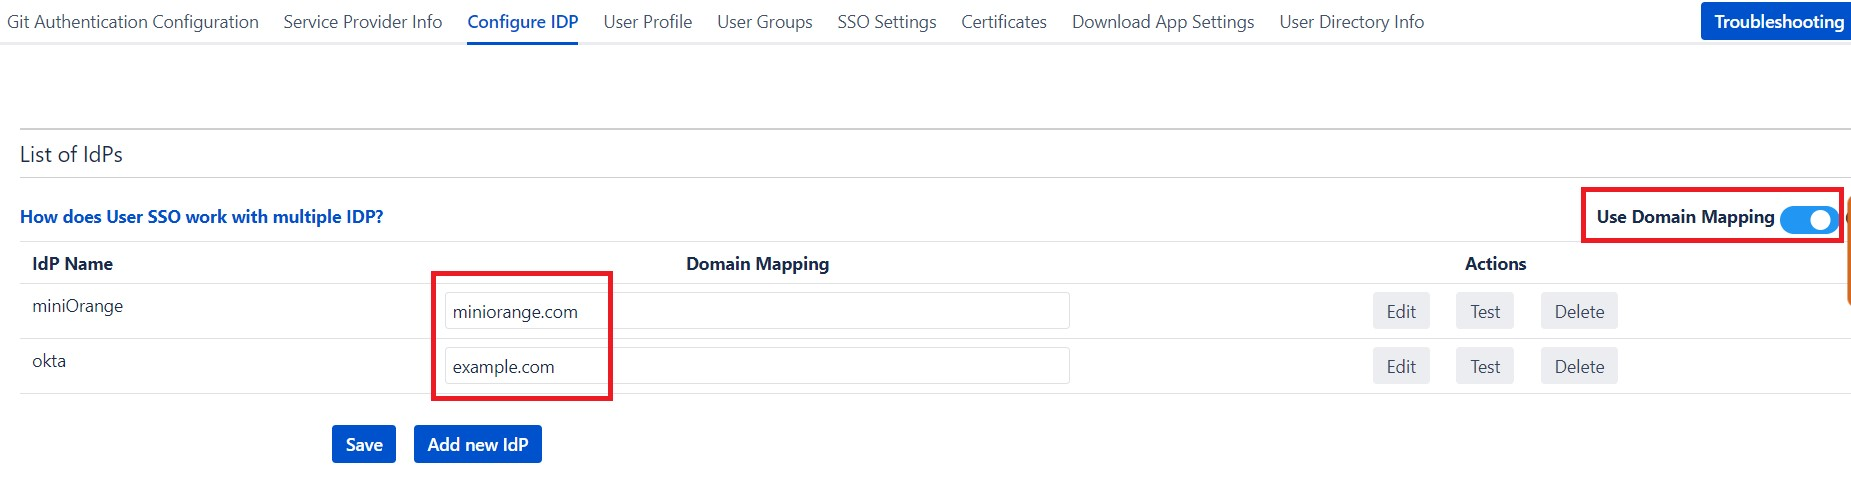 SAML Single Sign On (SSO) into Bitbucket Service Provider, Domain Mapping Configuration